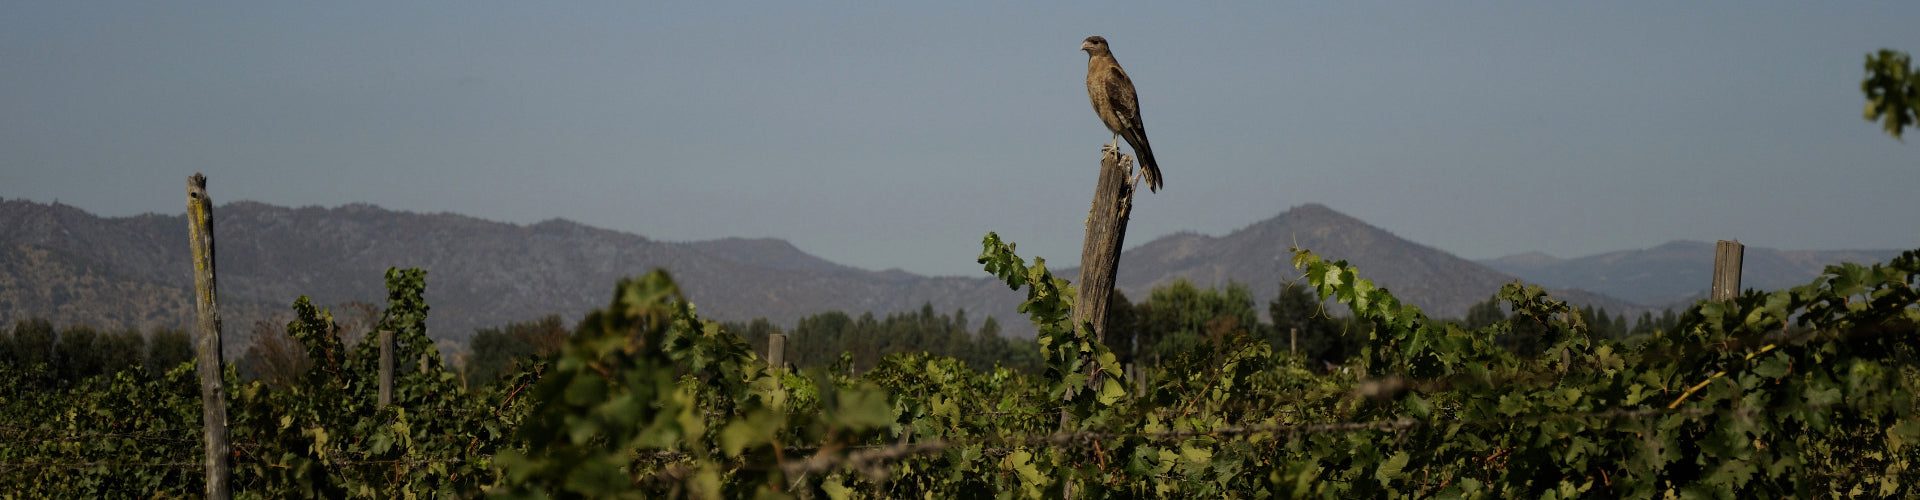 Bird of Prey sitting in the Viña Nahuel Vineyard